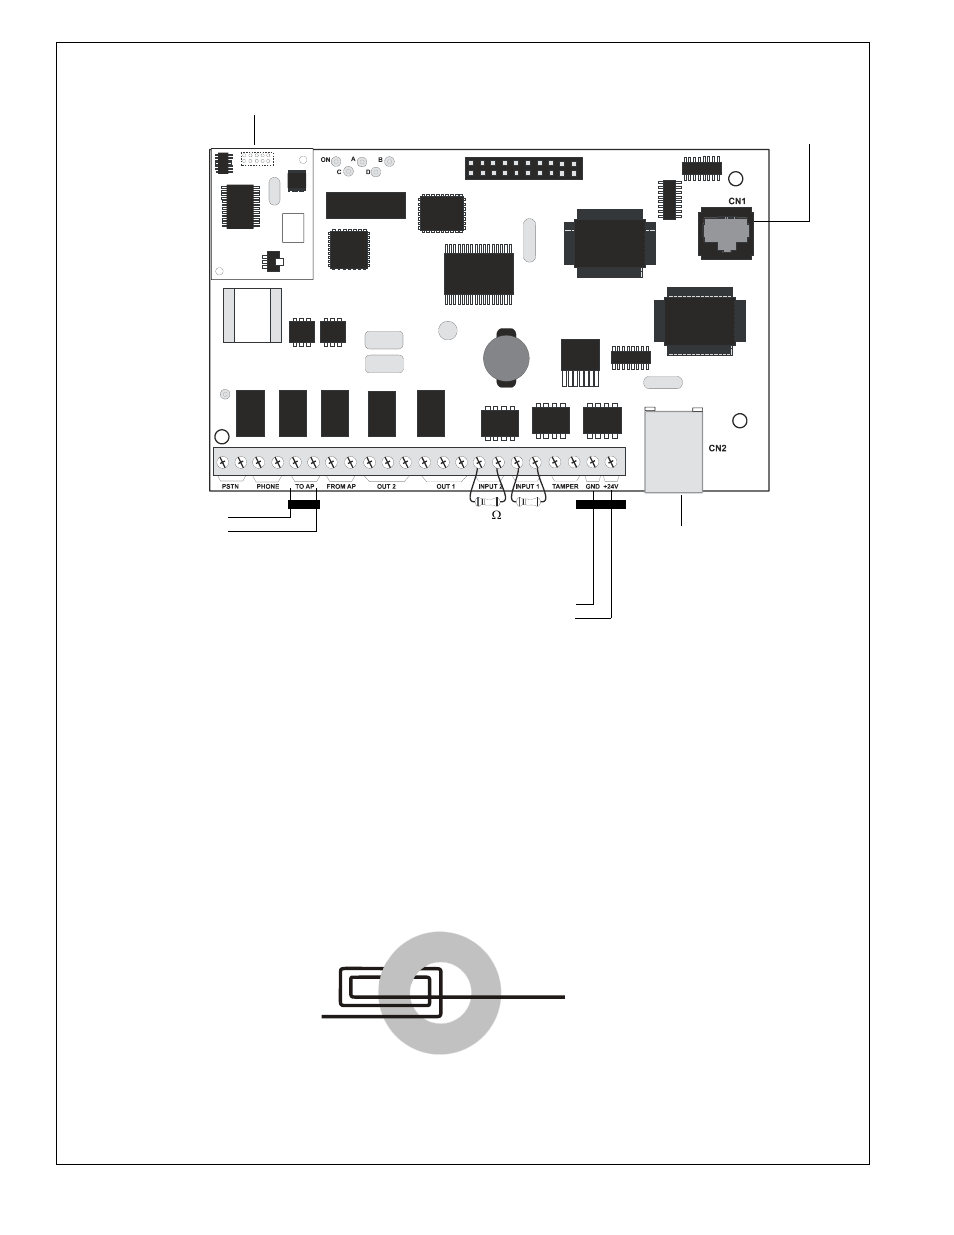 medium resolution of ferrite bead installation figure 6 ipdact 2 and ipdact 2ud wiring figure 7 ferrite bead installation silentknight ip communicator user manual page 8